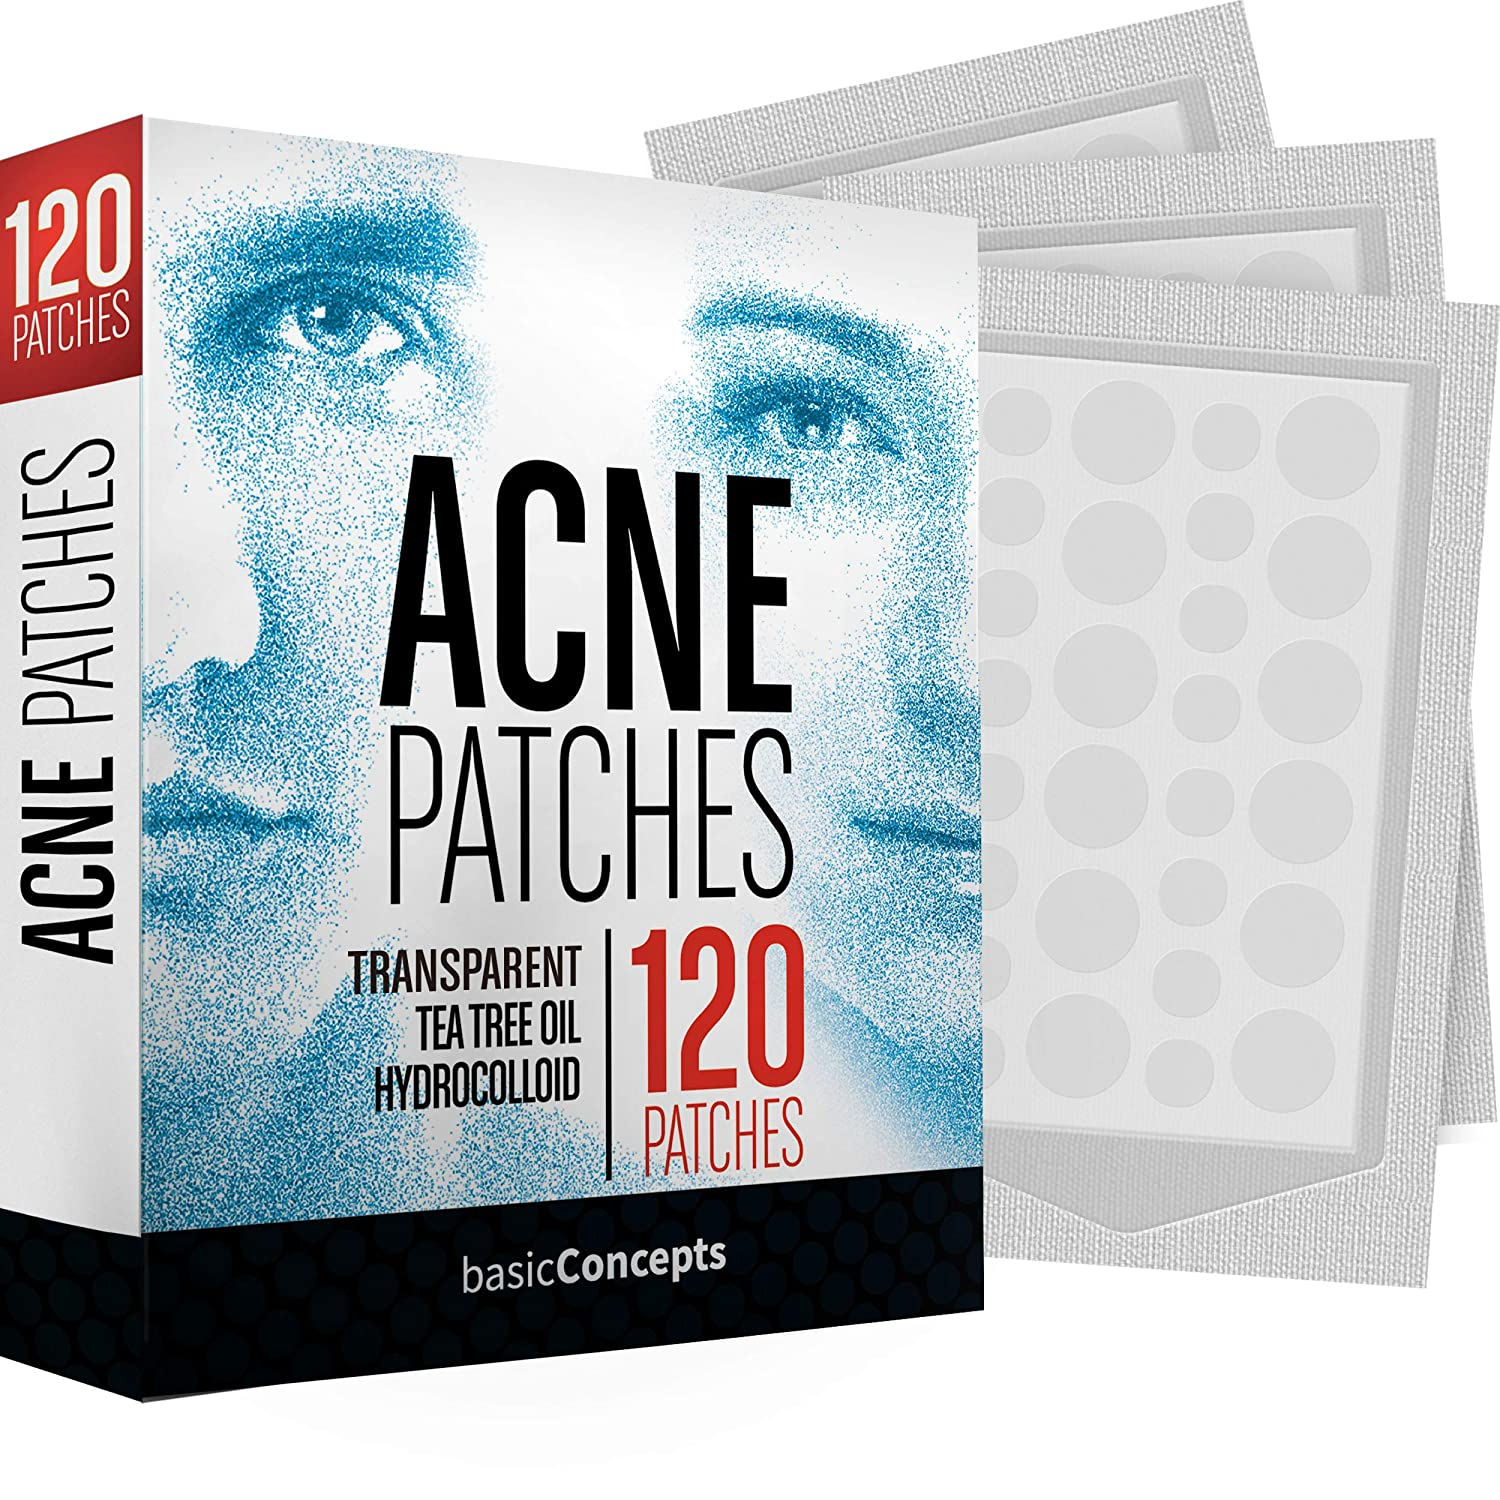 Acne Patches (120 Pack), Tea Tree Oil and Hydrocolloid Pimple Patches for Face, Zit Patch (3 Sizes), Blemish Patches, Acne Dots, Pimple Stickers, Natural Acne Patch and Pimple Patch